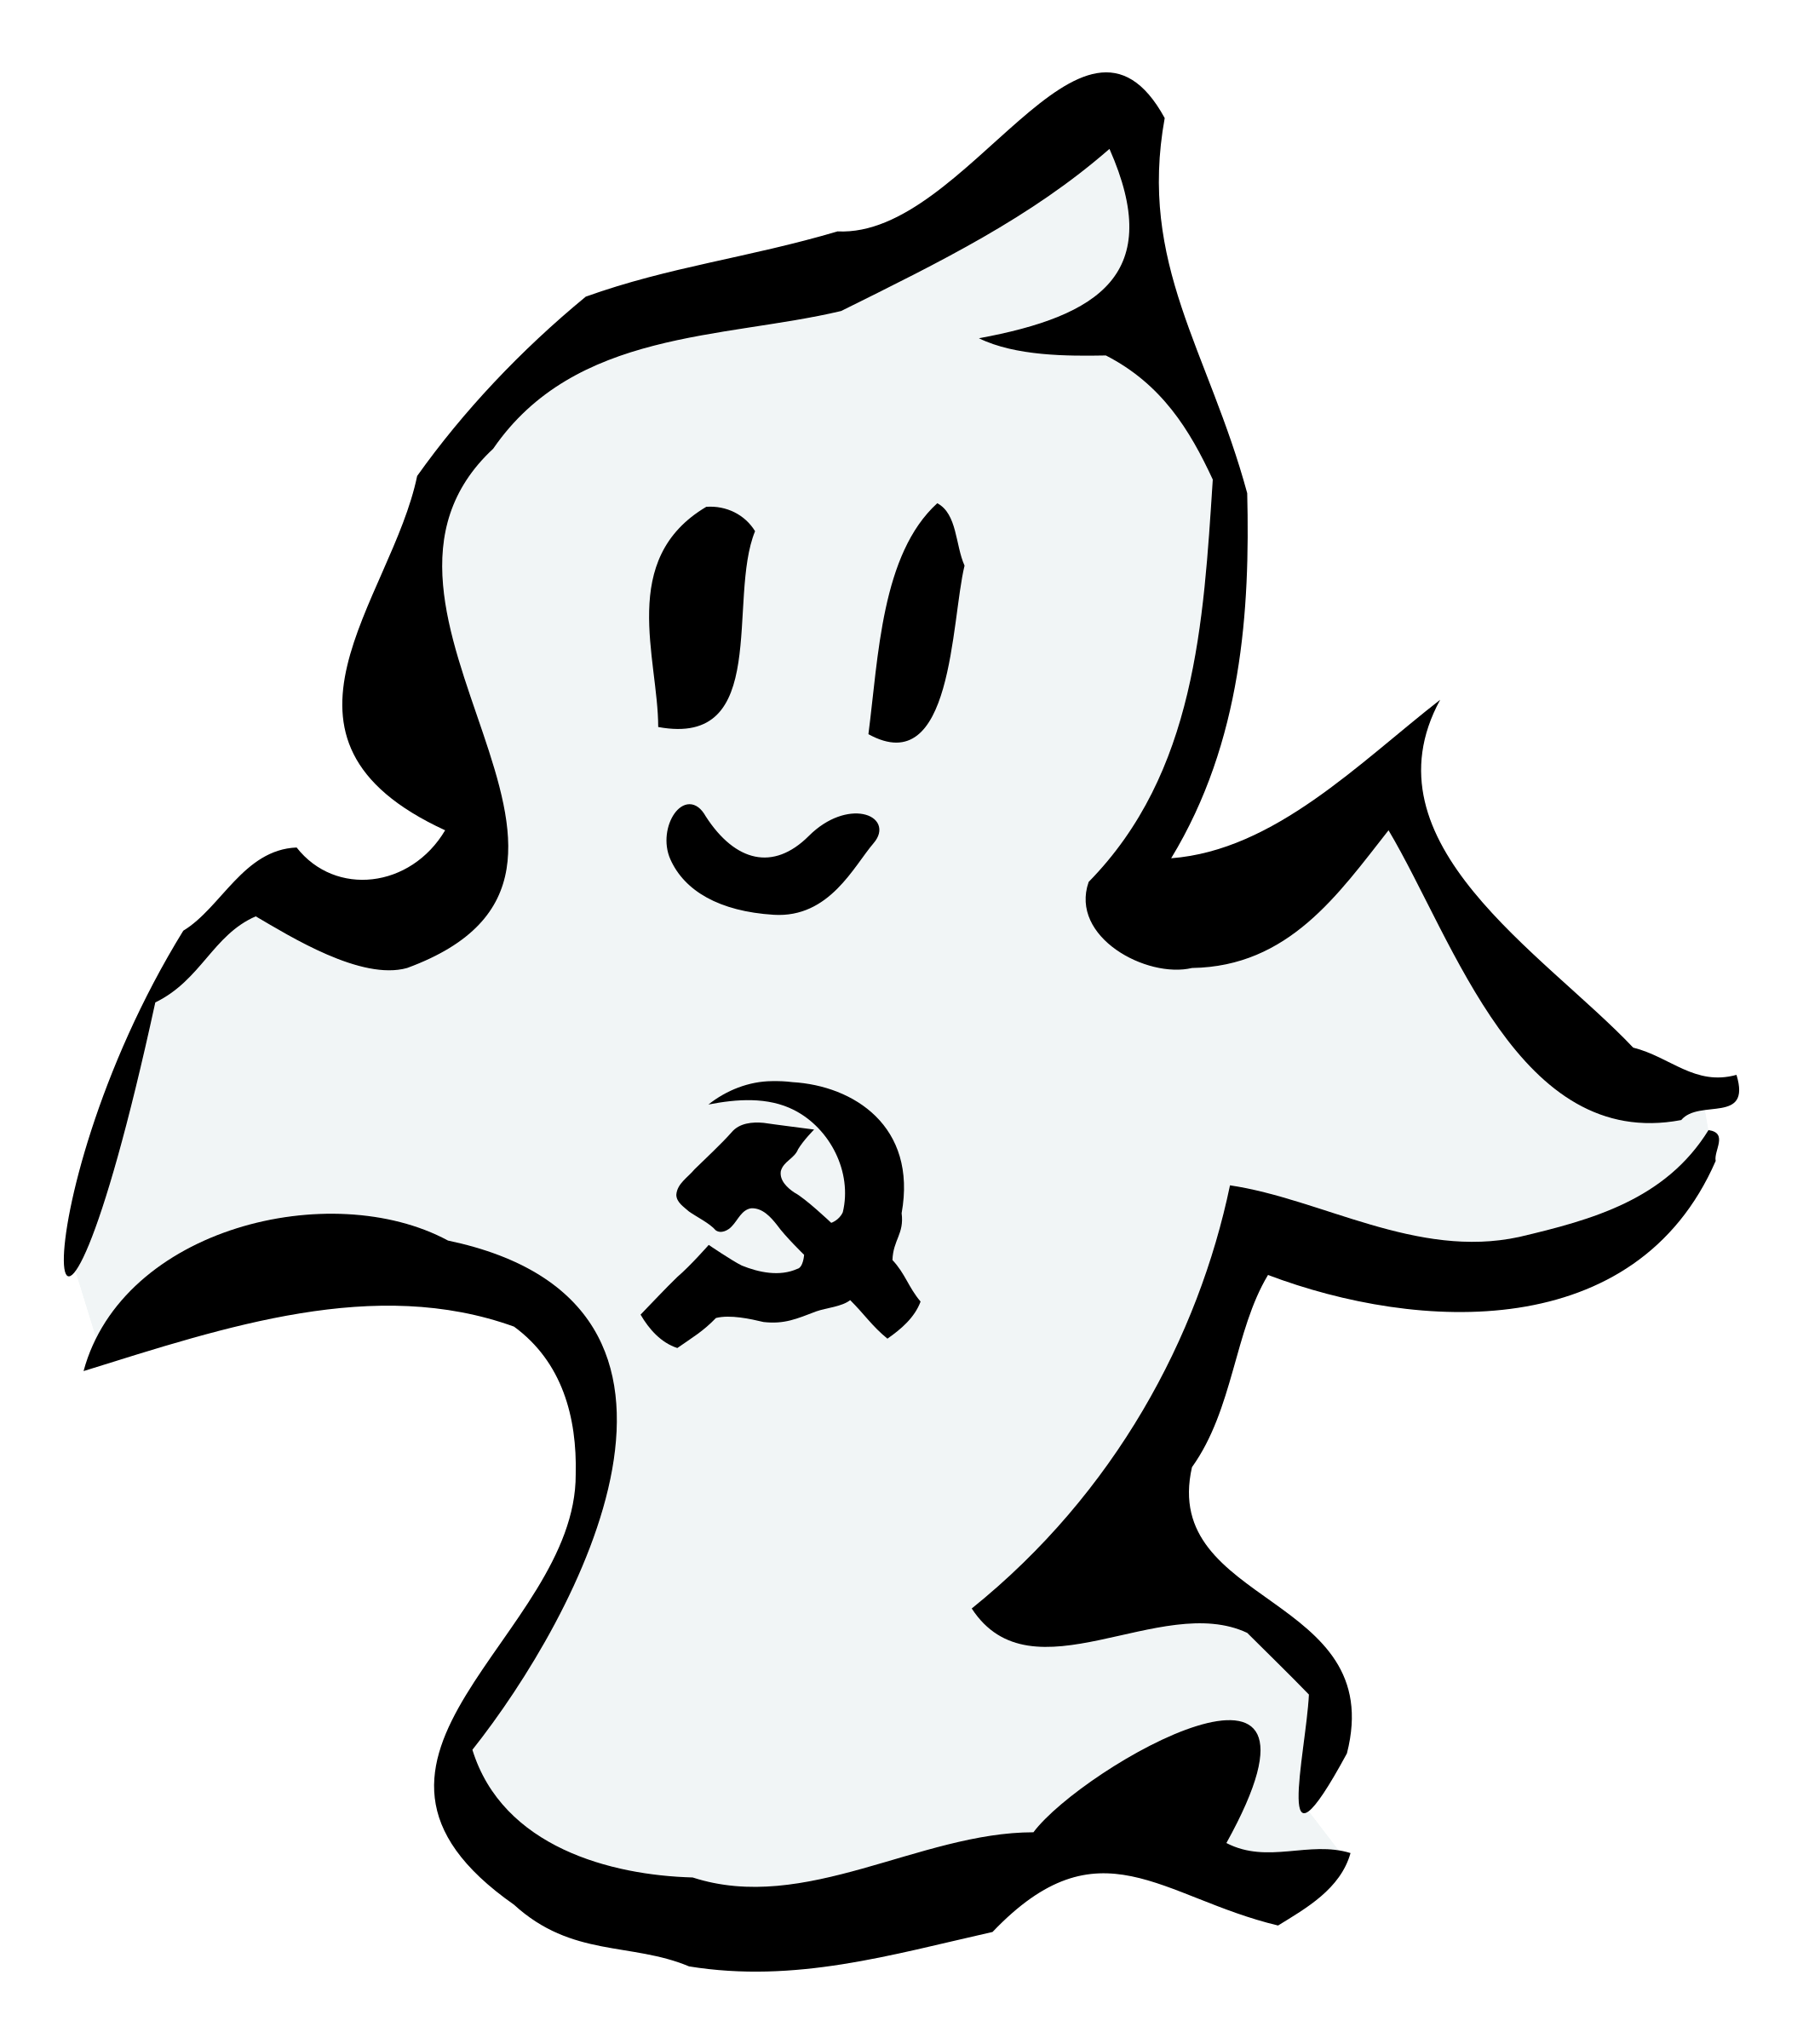 Ghost clipart spectre, Ghost spectre Transparent FREE for.